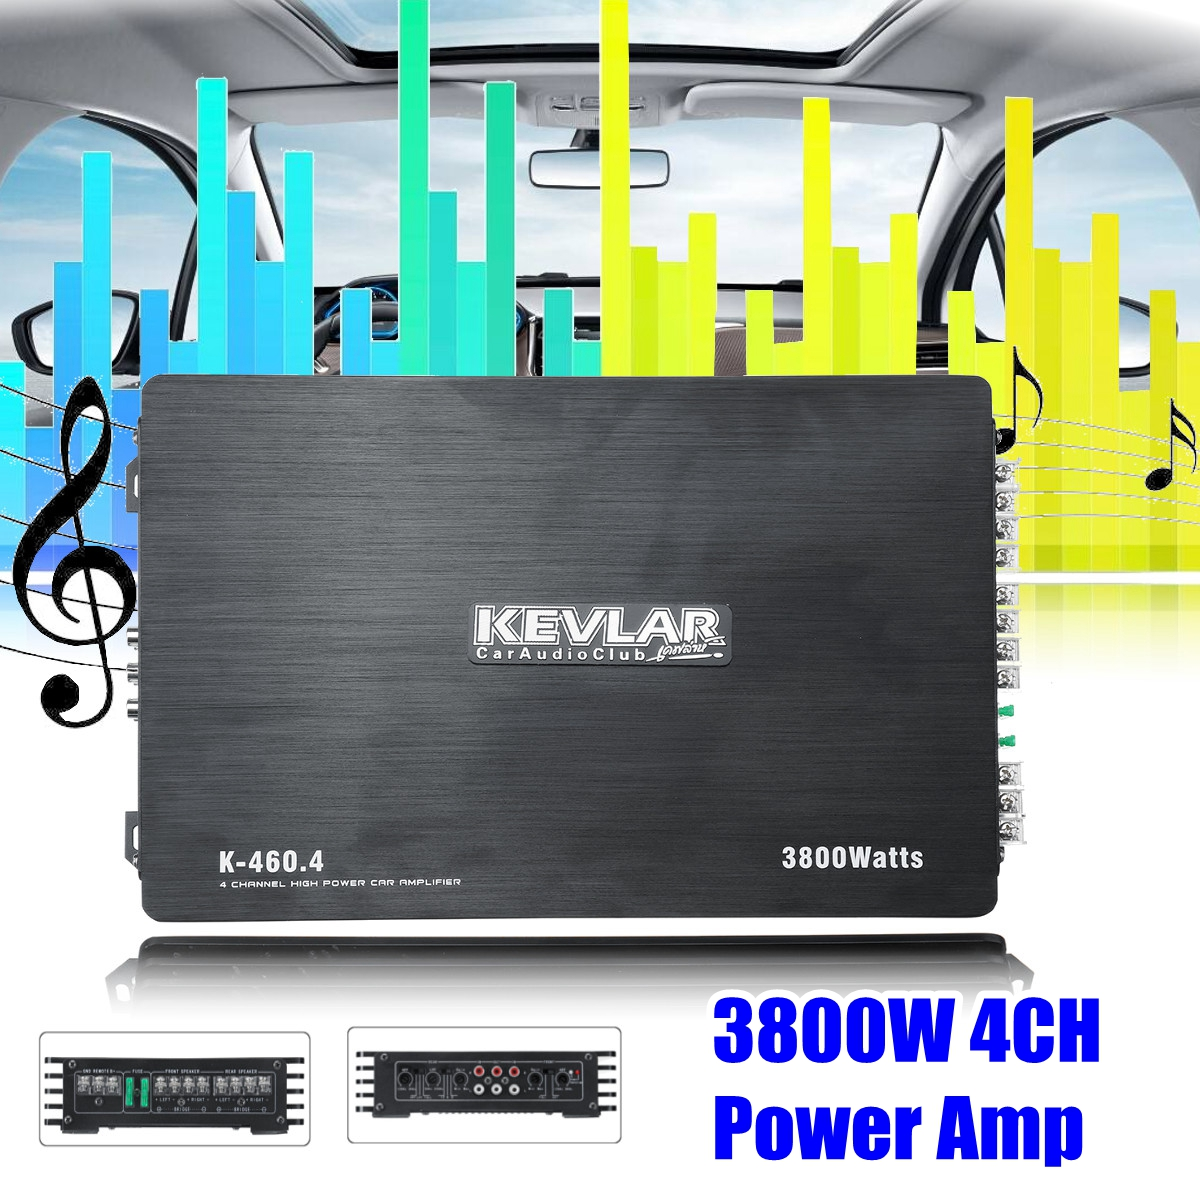 3800W 4 Channel Equalizer Home Stereo Power Amplifier USB Car Amplifier Home Theater Amplifiers Audio shinco s 9008 home theater amplifier 5 1 audio high power digital amplifier